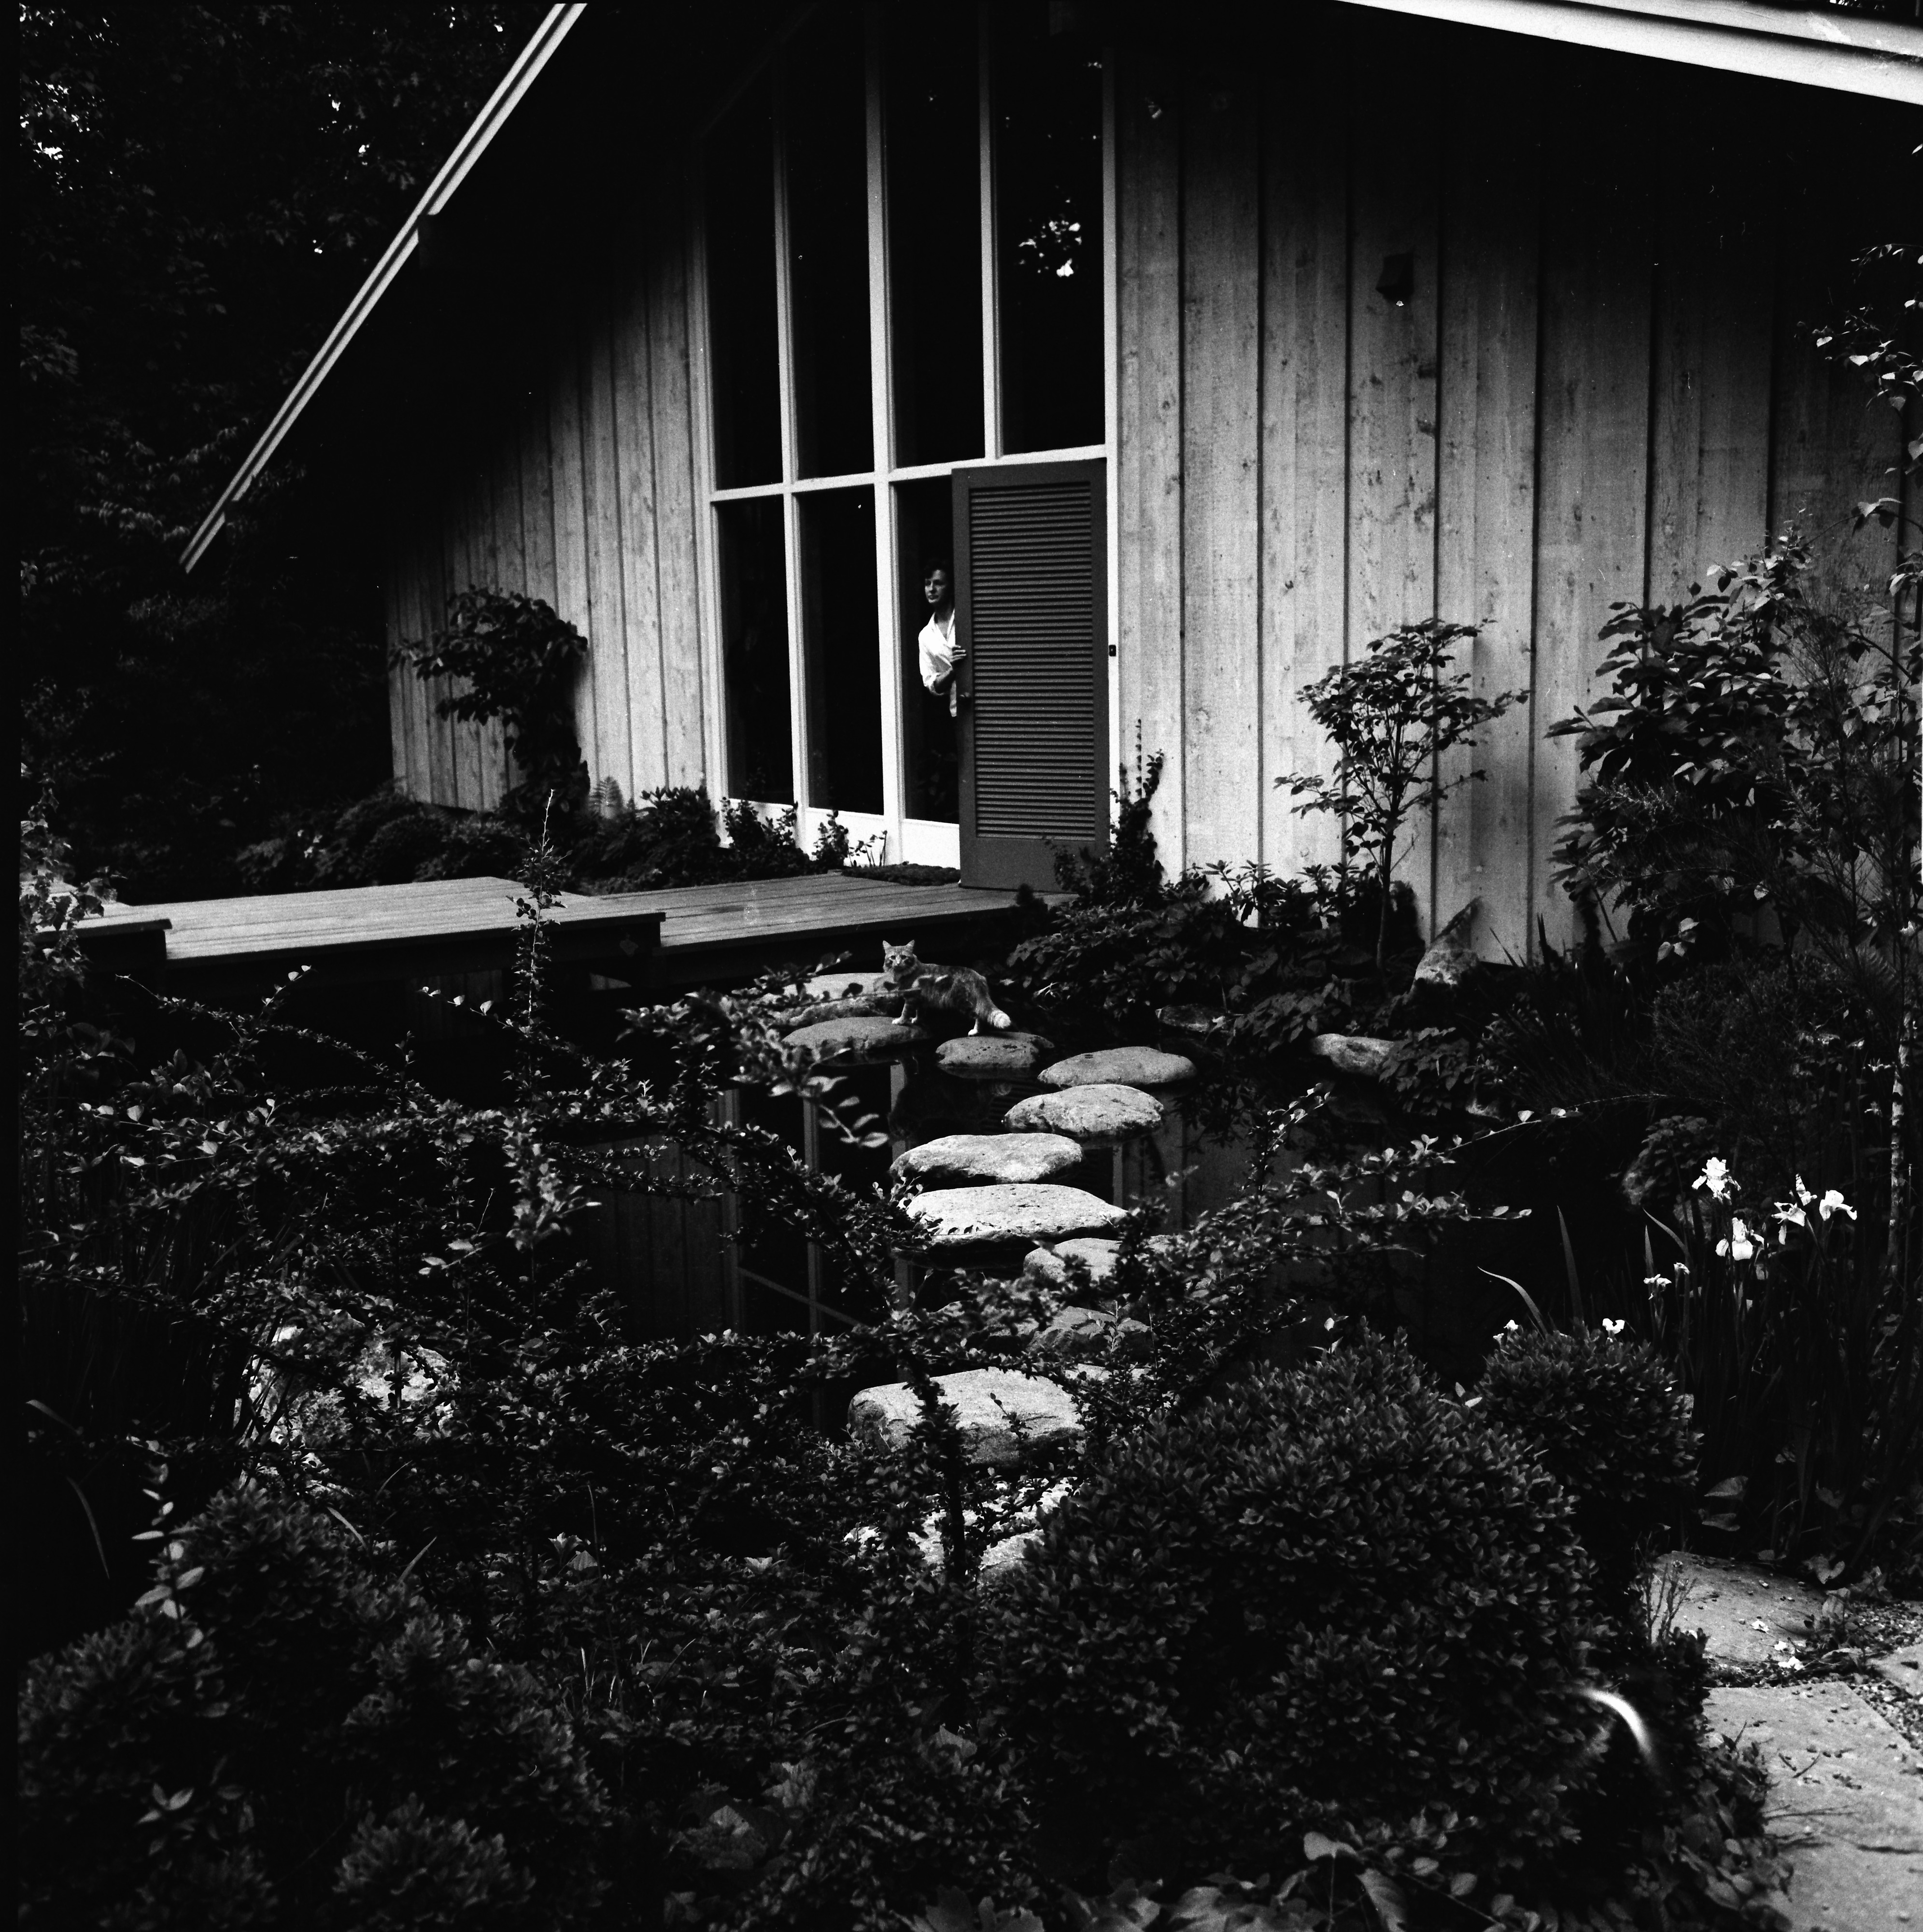 Japanese Garden at L. A. Peter Gosling Home, 324 N. Barton Dr., June 1966 image